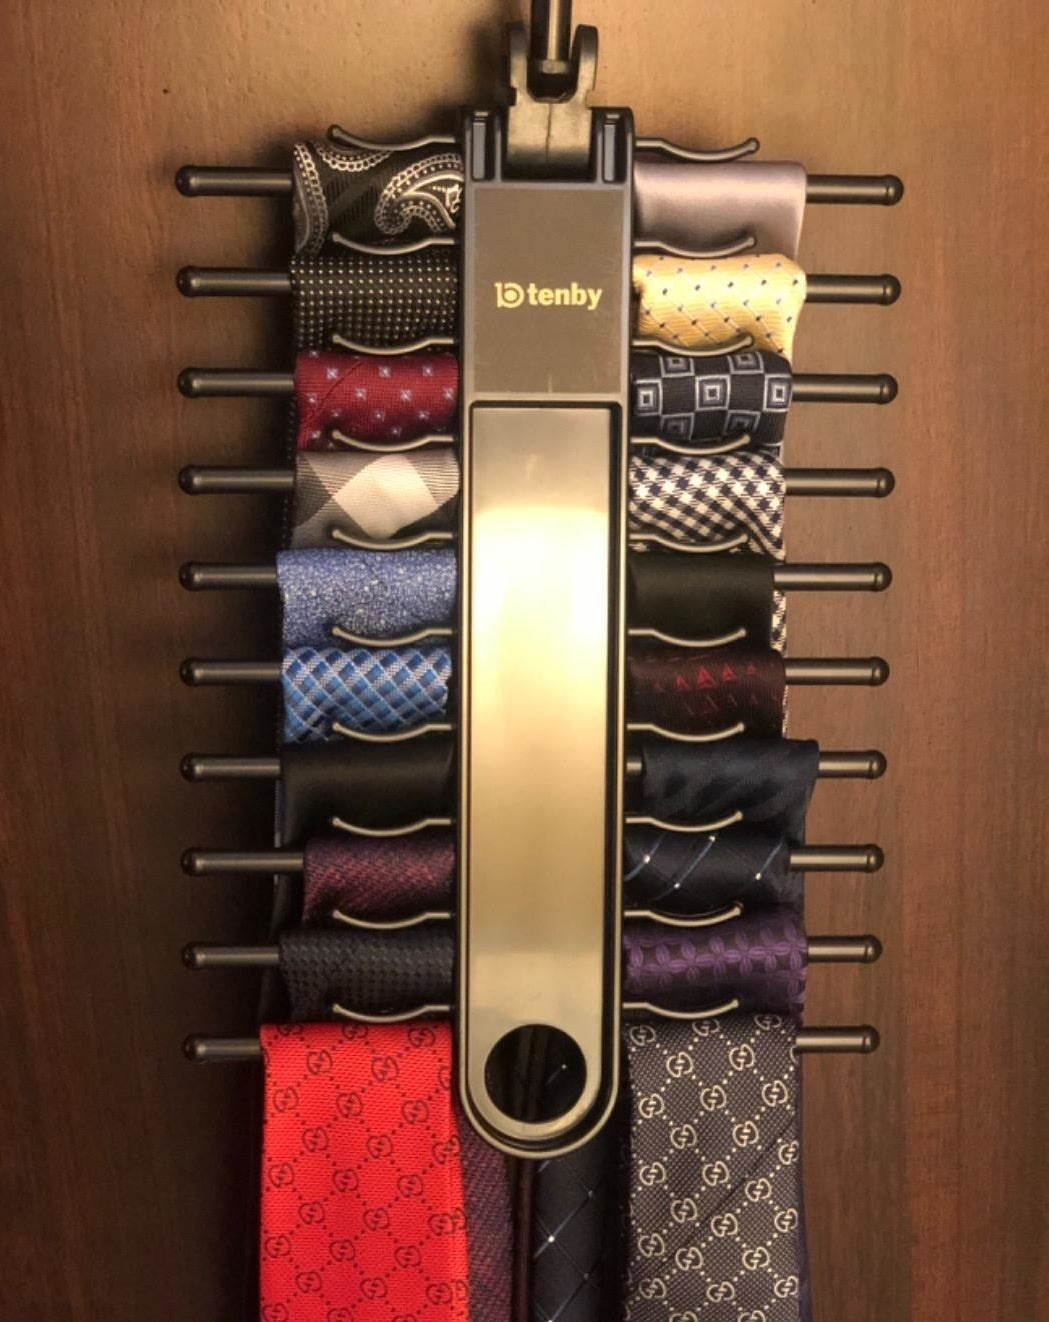 A reviewer's ties on the hanger